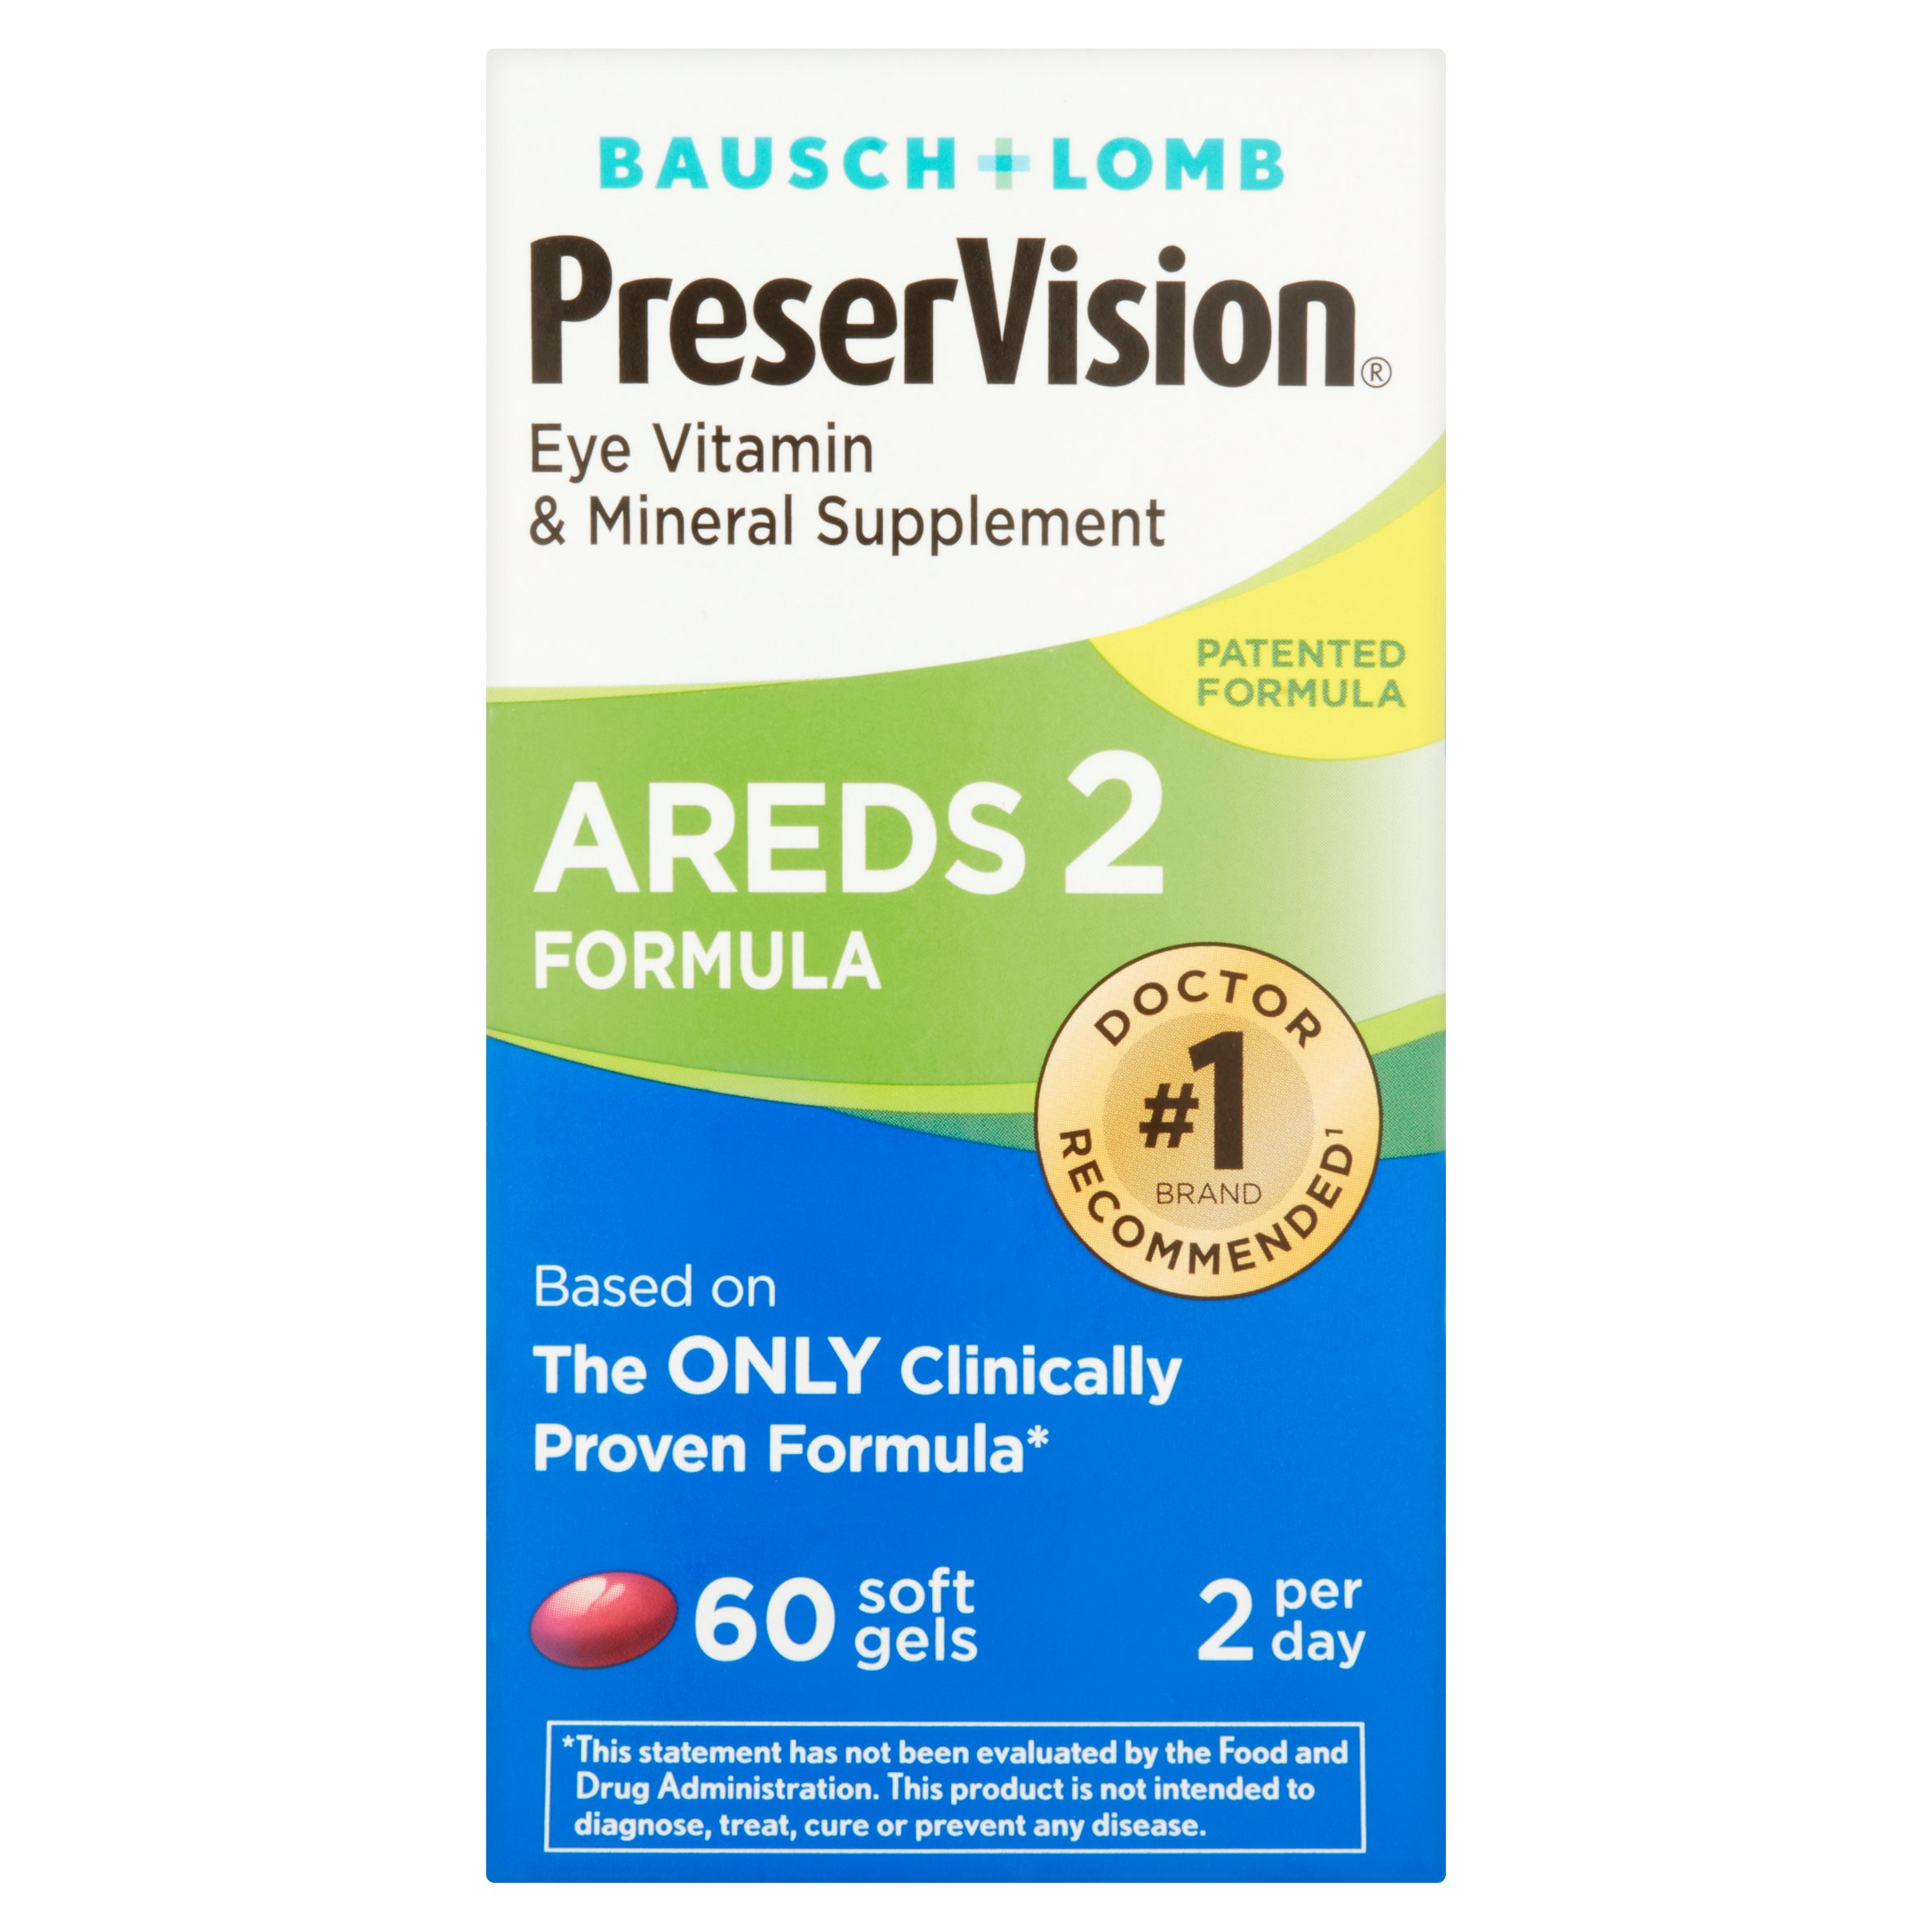 Bausch + Lomb PreserVision Eye Vitamin & Mineral Supplement Areds 2 Formula Soft Gels, 60 count